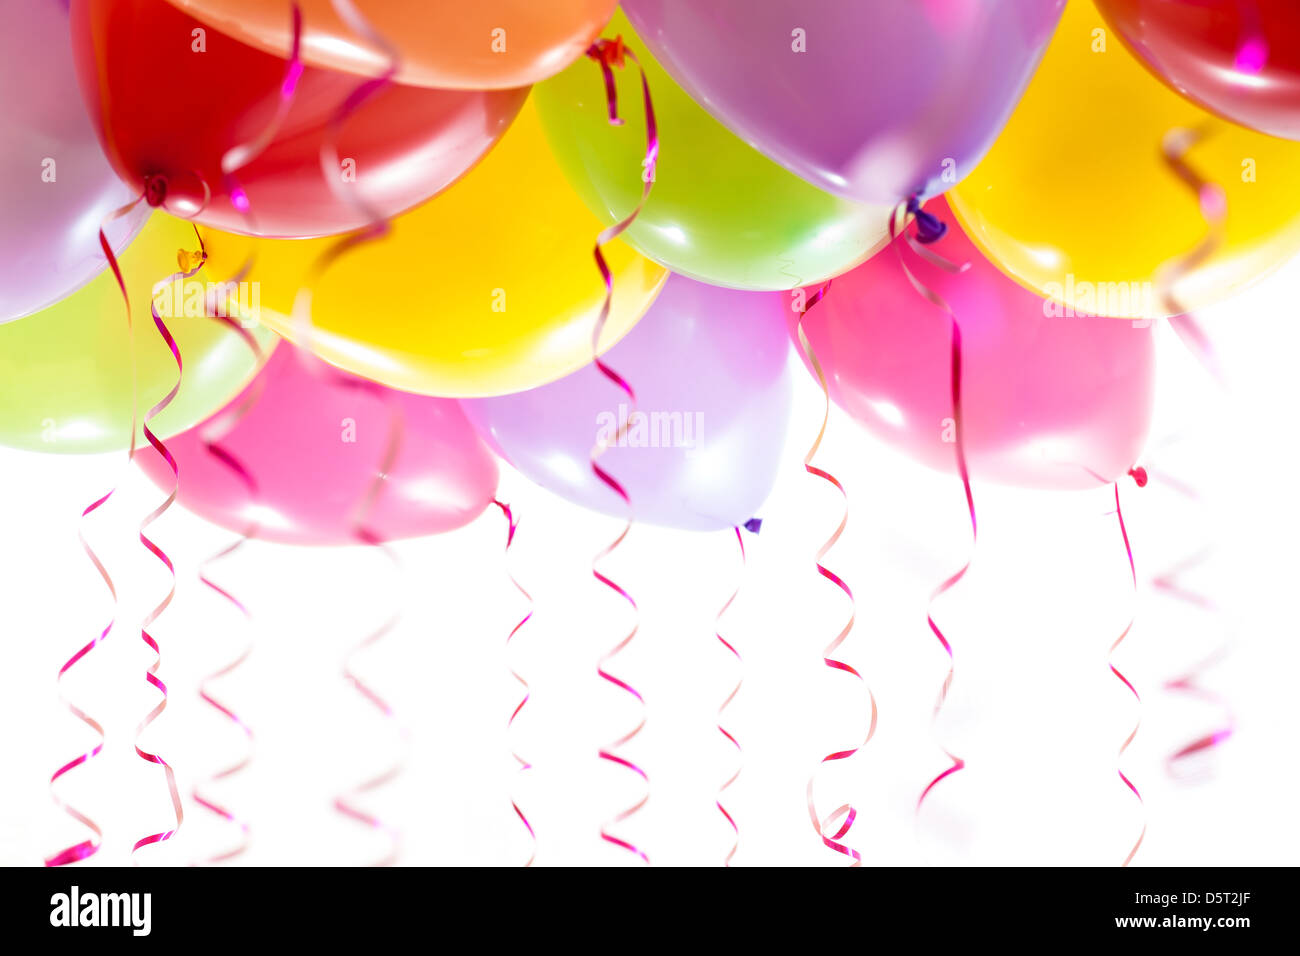 balloons with streamers for birthday party celebration - Stock Image